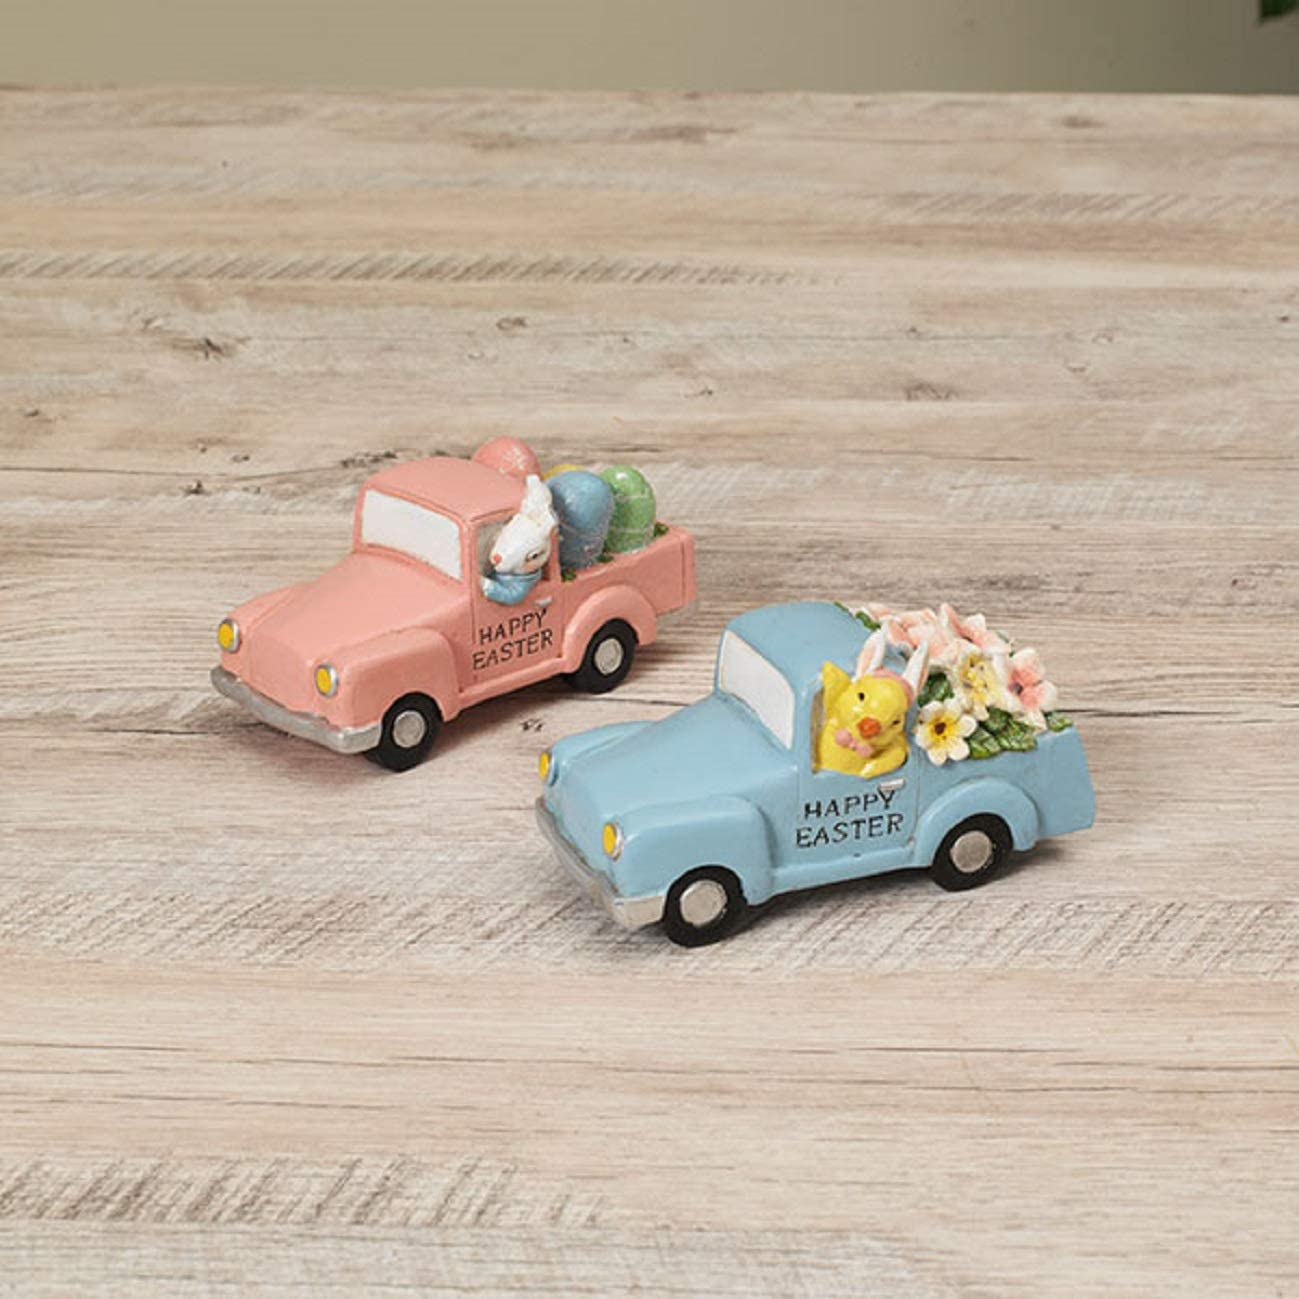 Bunny & Chick Happy Easter Truck Figurines